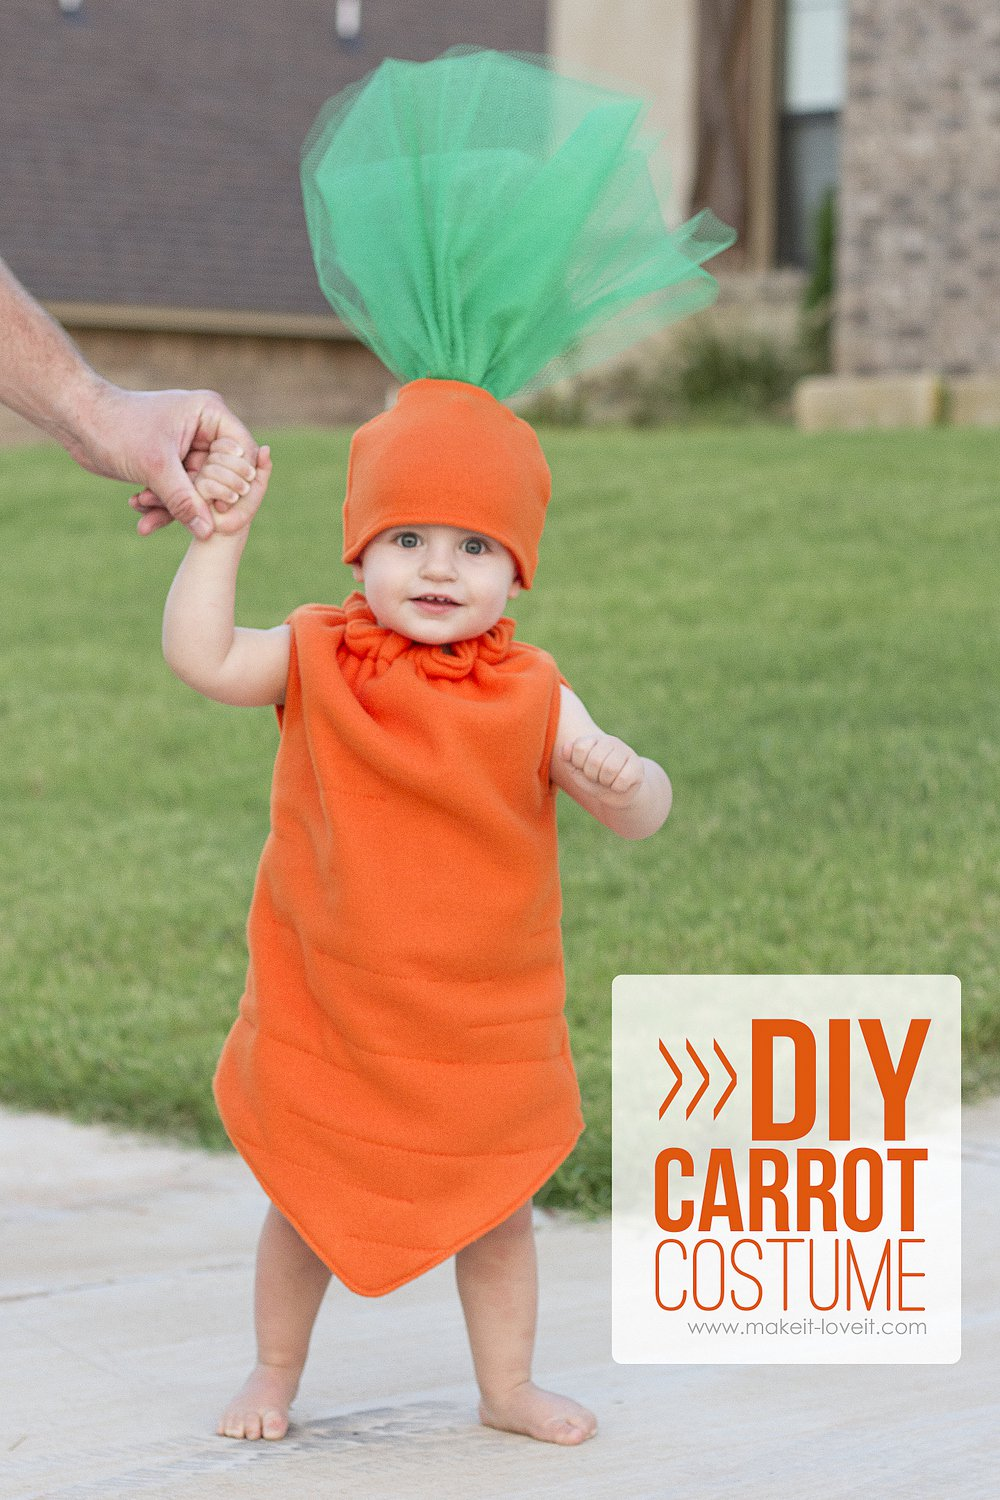 Diy carrot costume